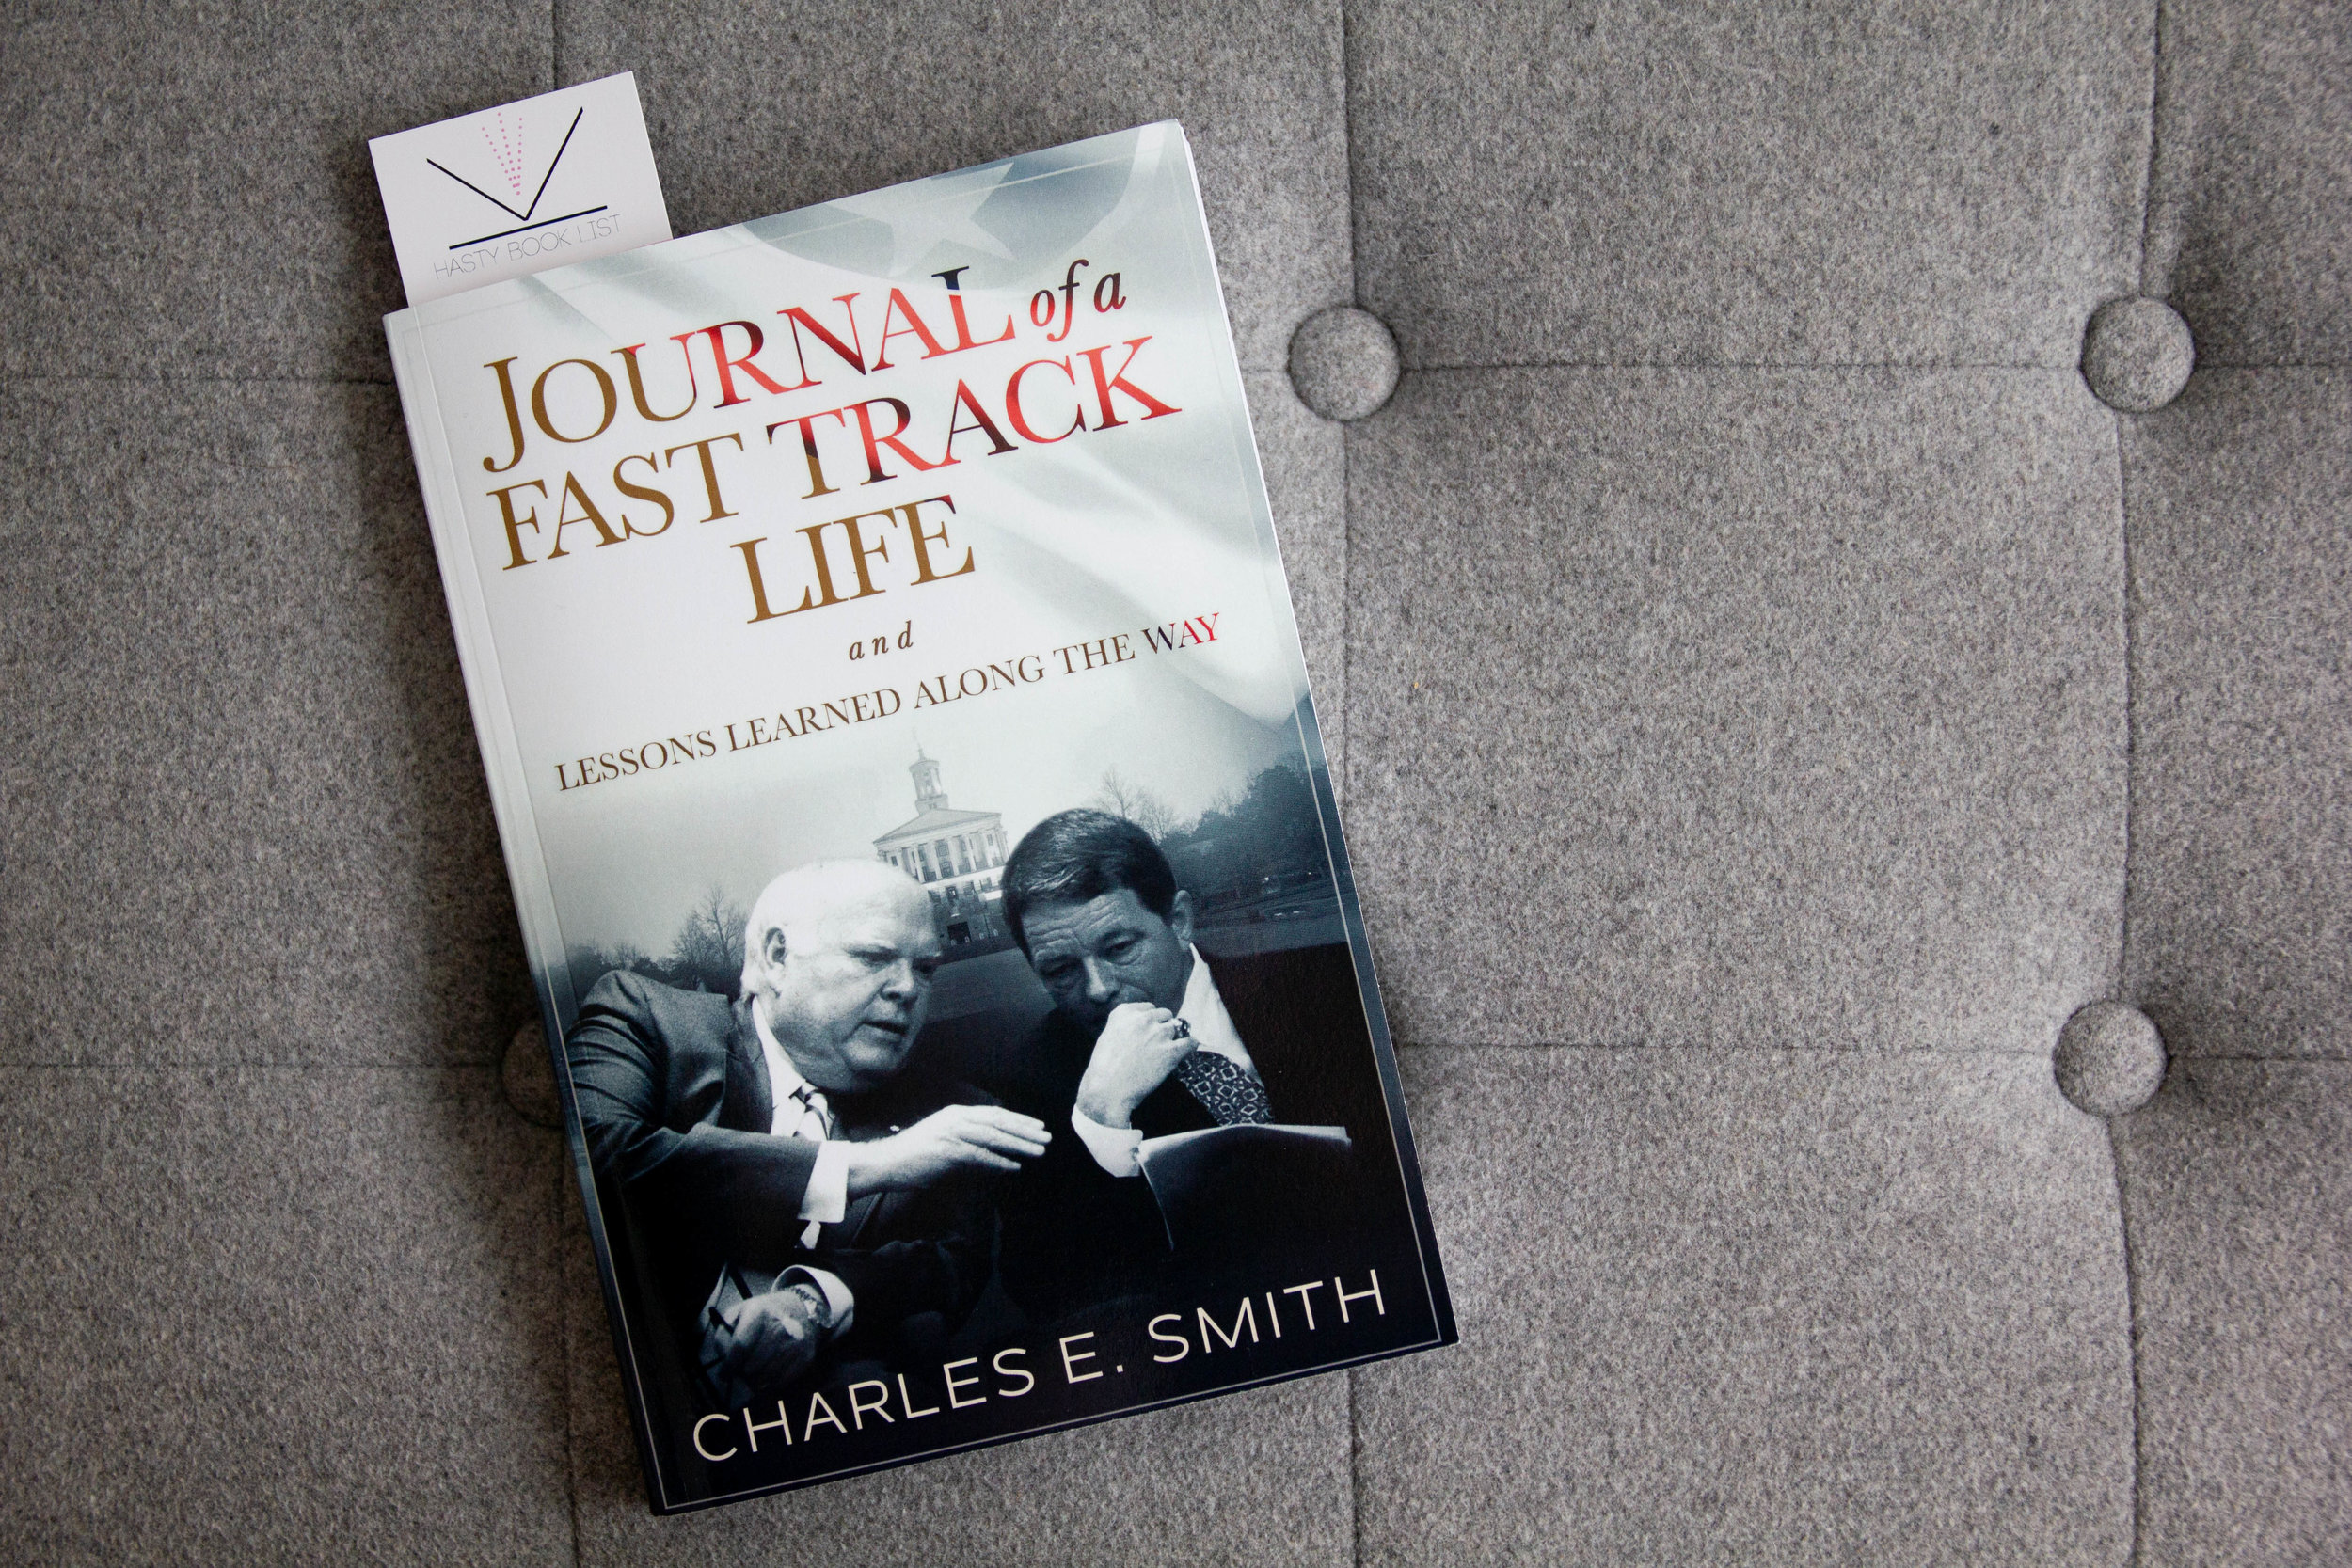 Book Feature - Journal of a Fast Track Life and Lessons Learned Along the Way by Charles E. Smith